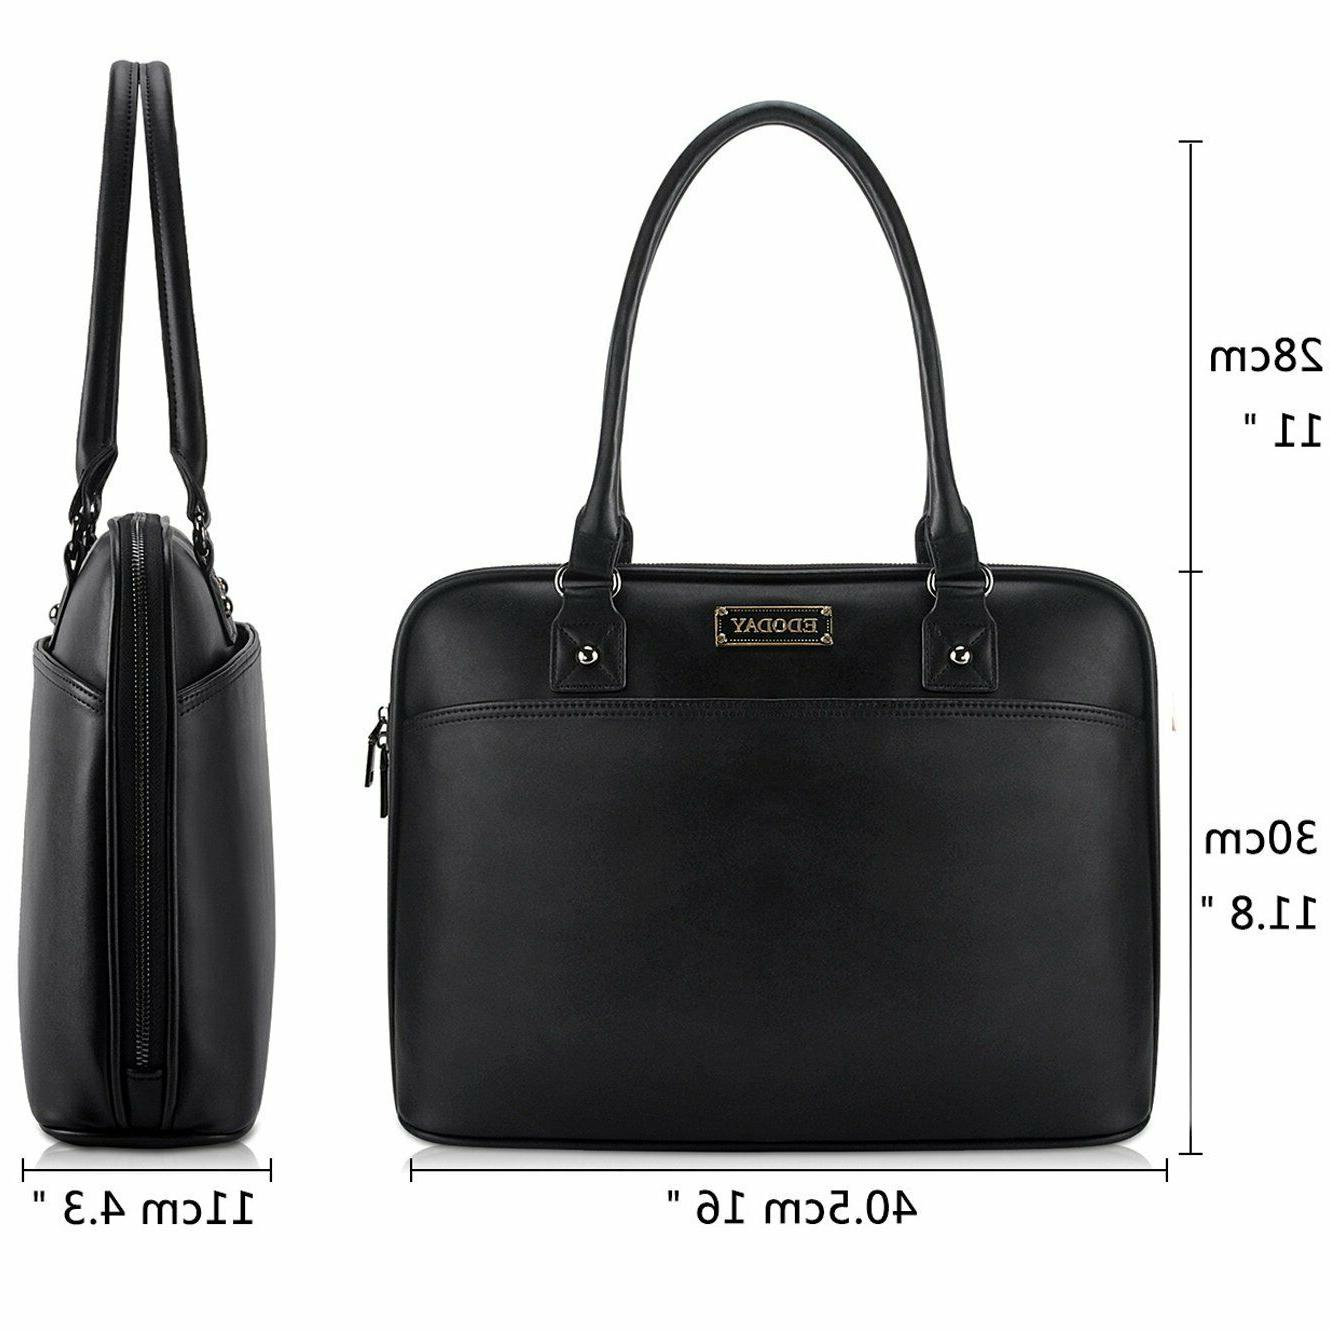 "SALE - Premium Edoday 15.6"" Laptop Bag, Shoulder Case"